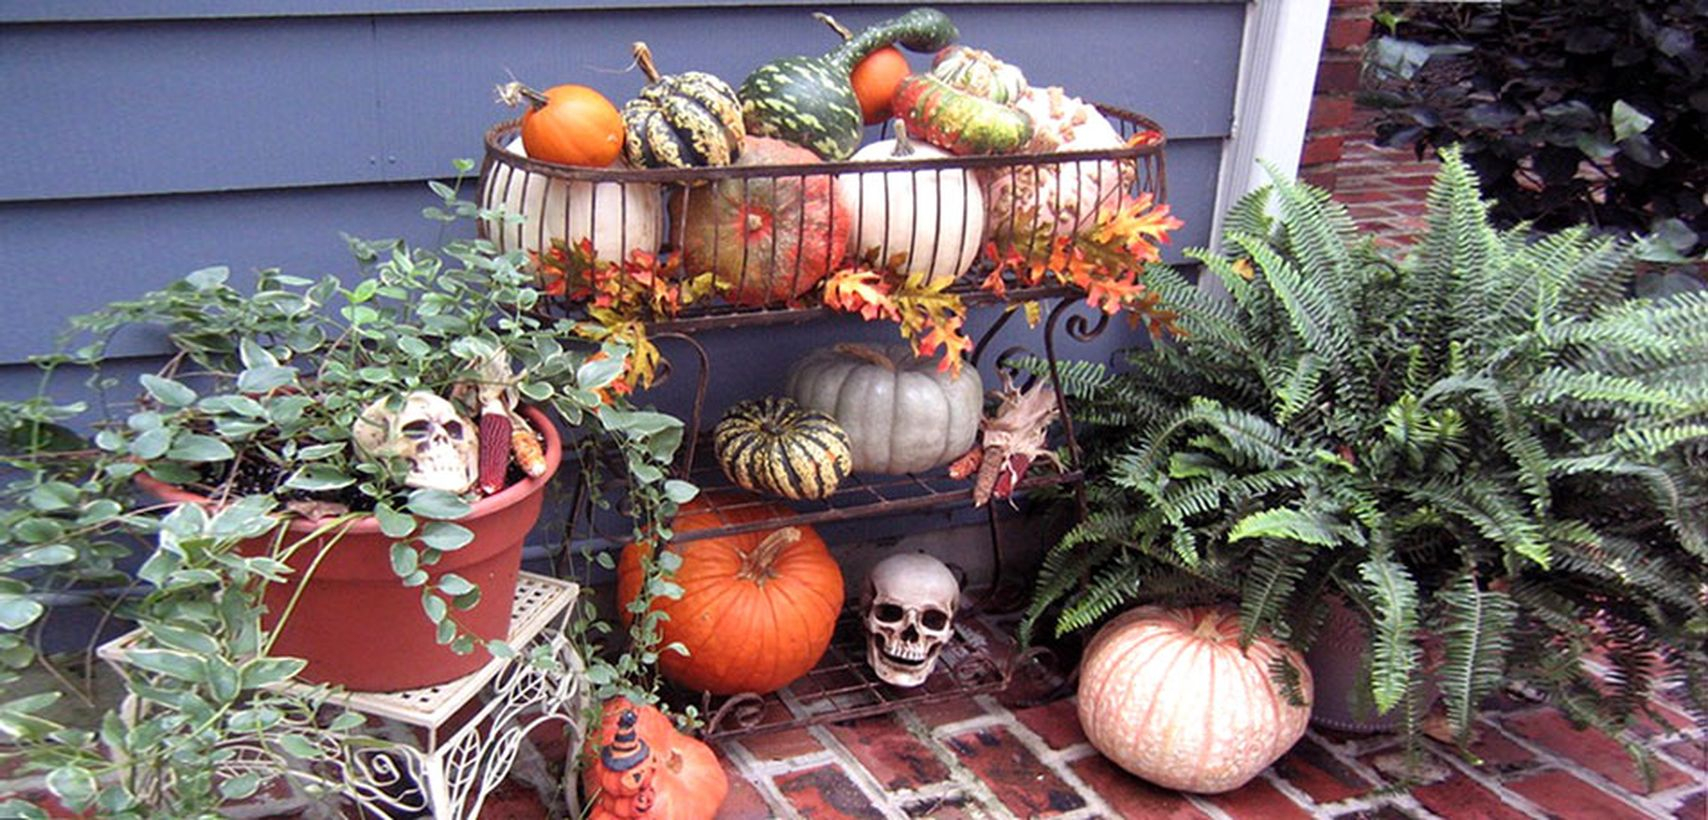 Decoration patio theme halloween with skull and pumpkin